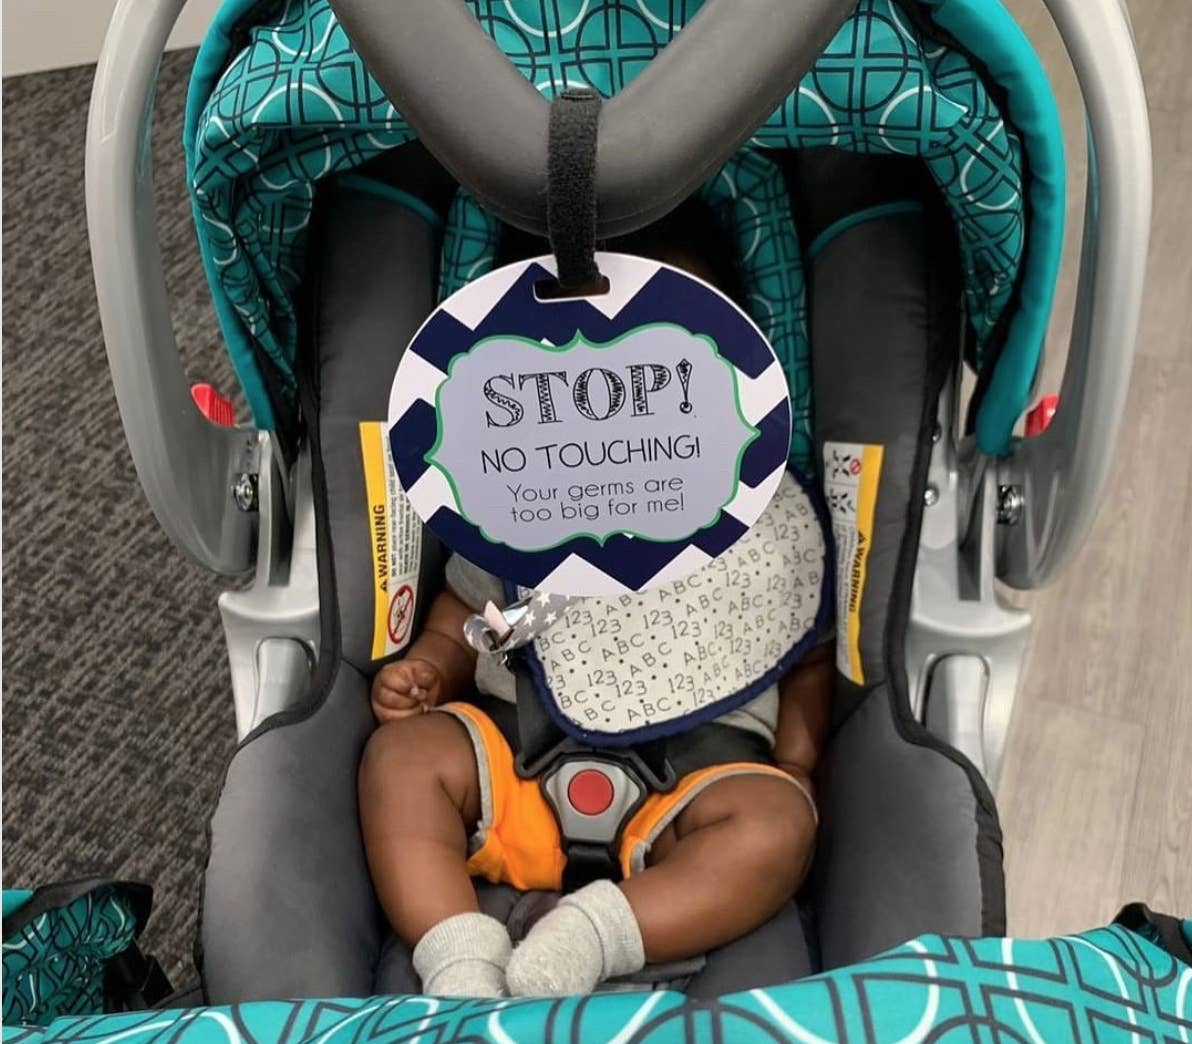 No Touching Stroller/Car Seat Tag